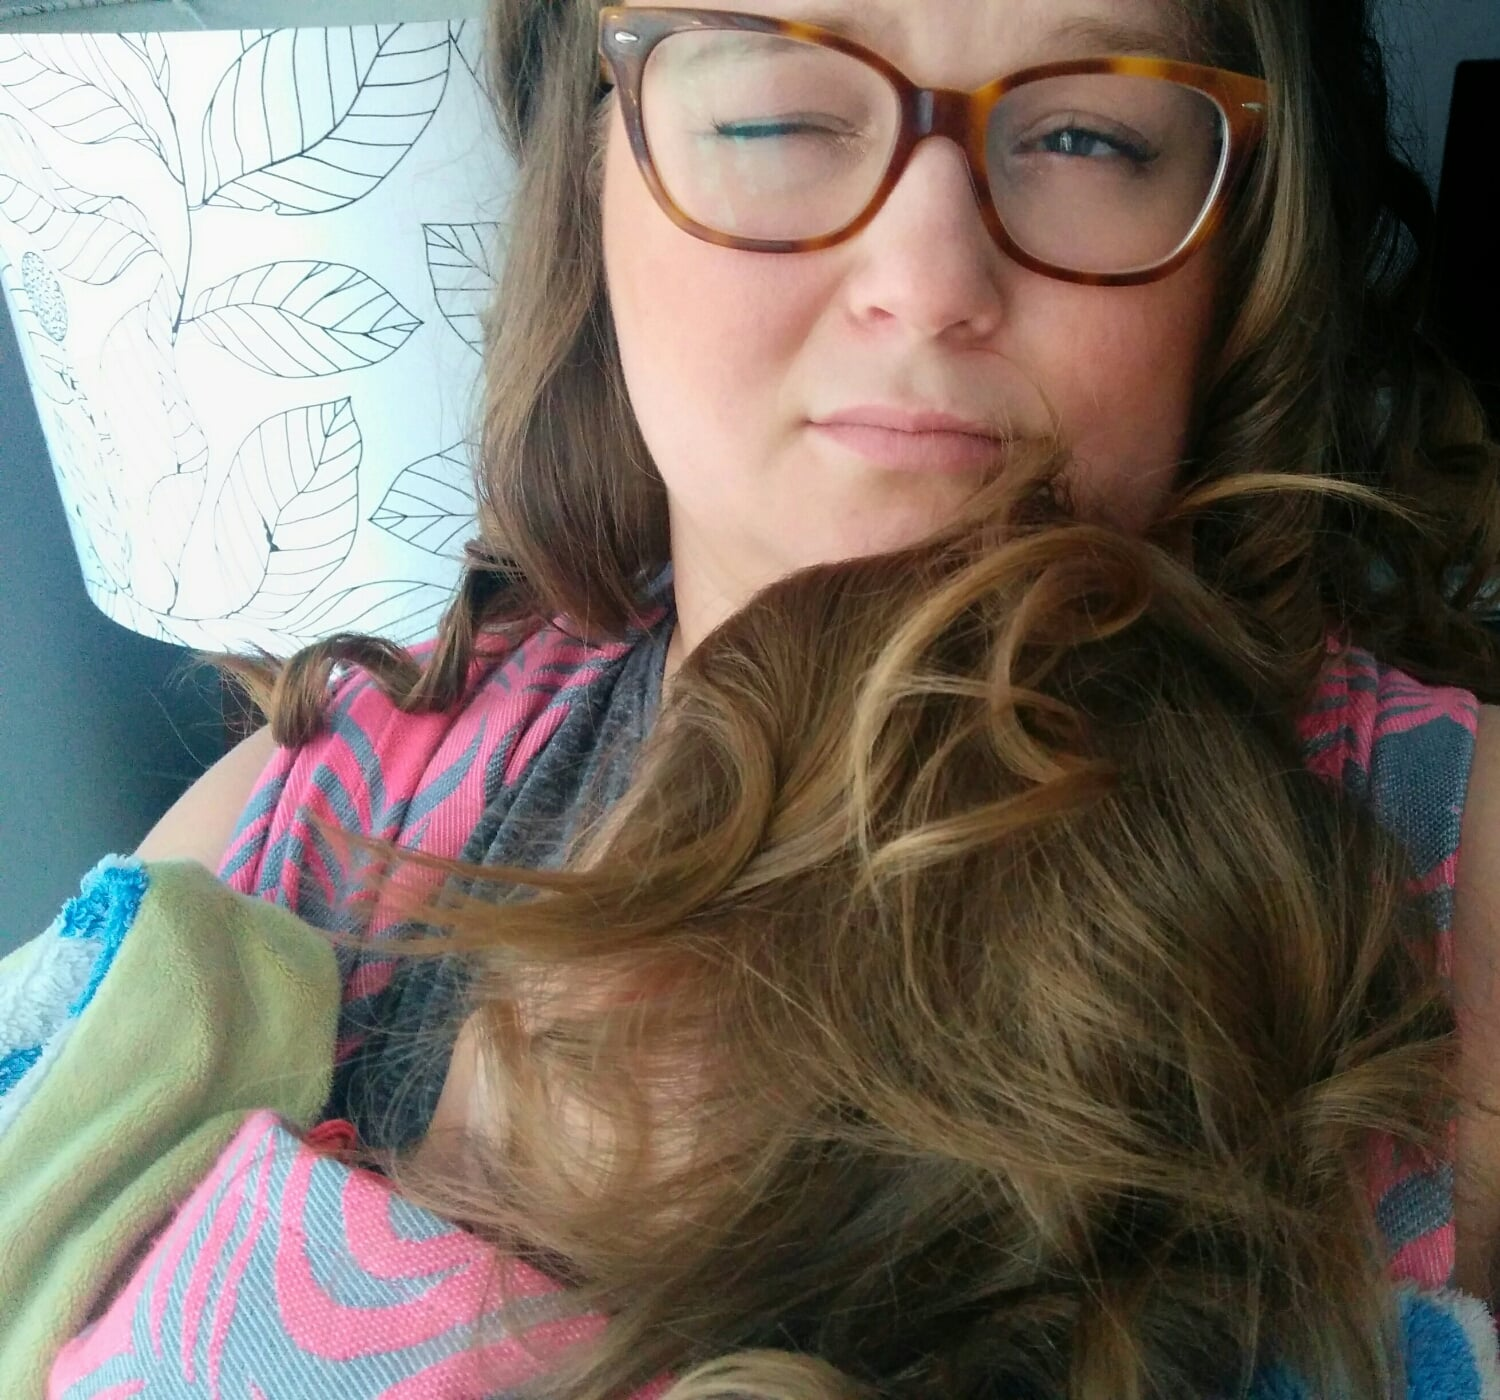 Although I was really enjoying myself, this Peaceful nap with my toddler was not without difficulty. Her hair kept creeping its way to my nose...